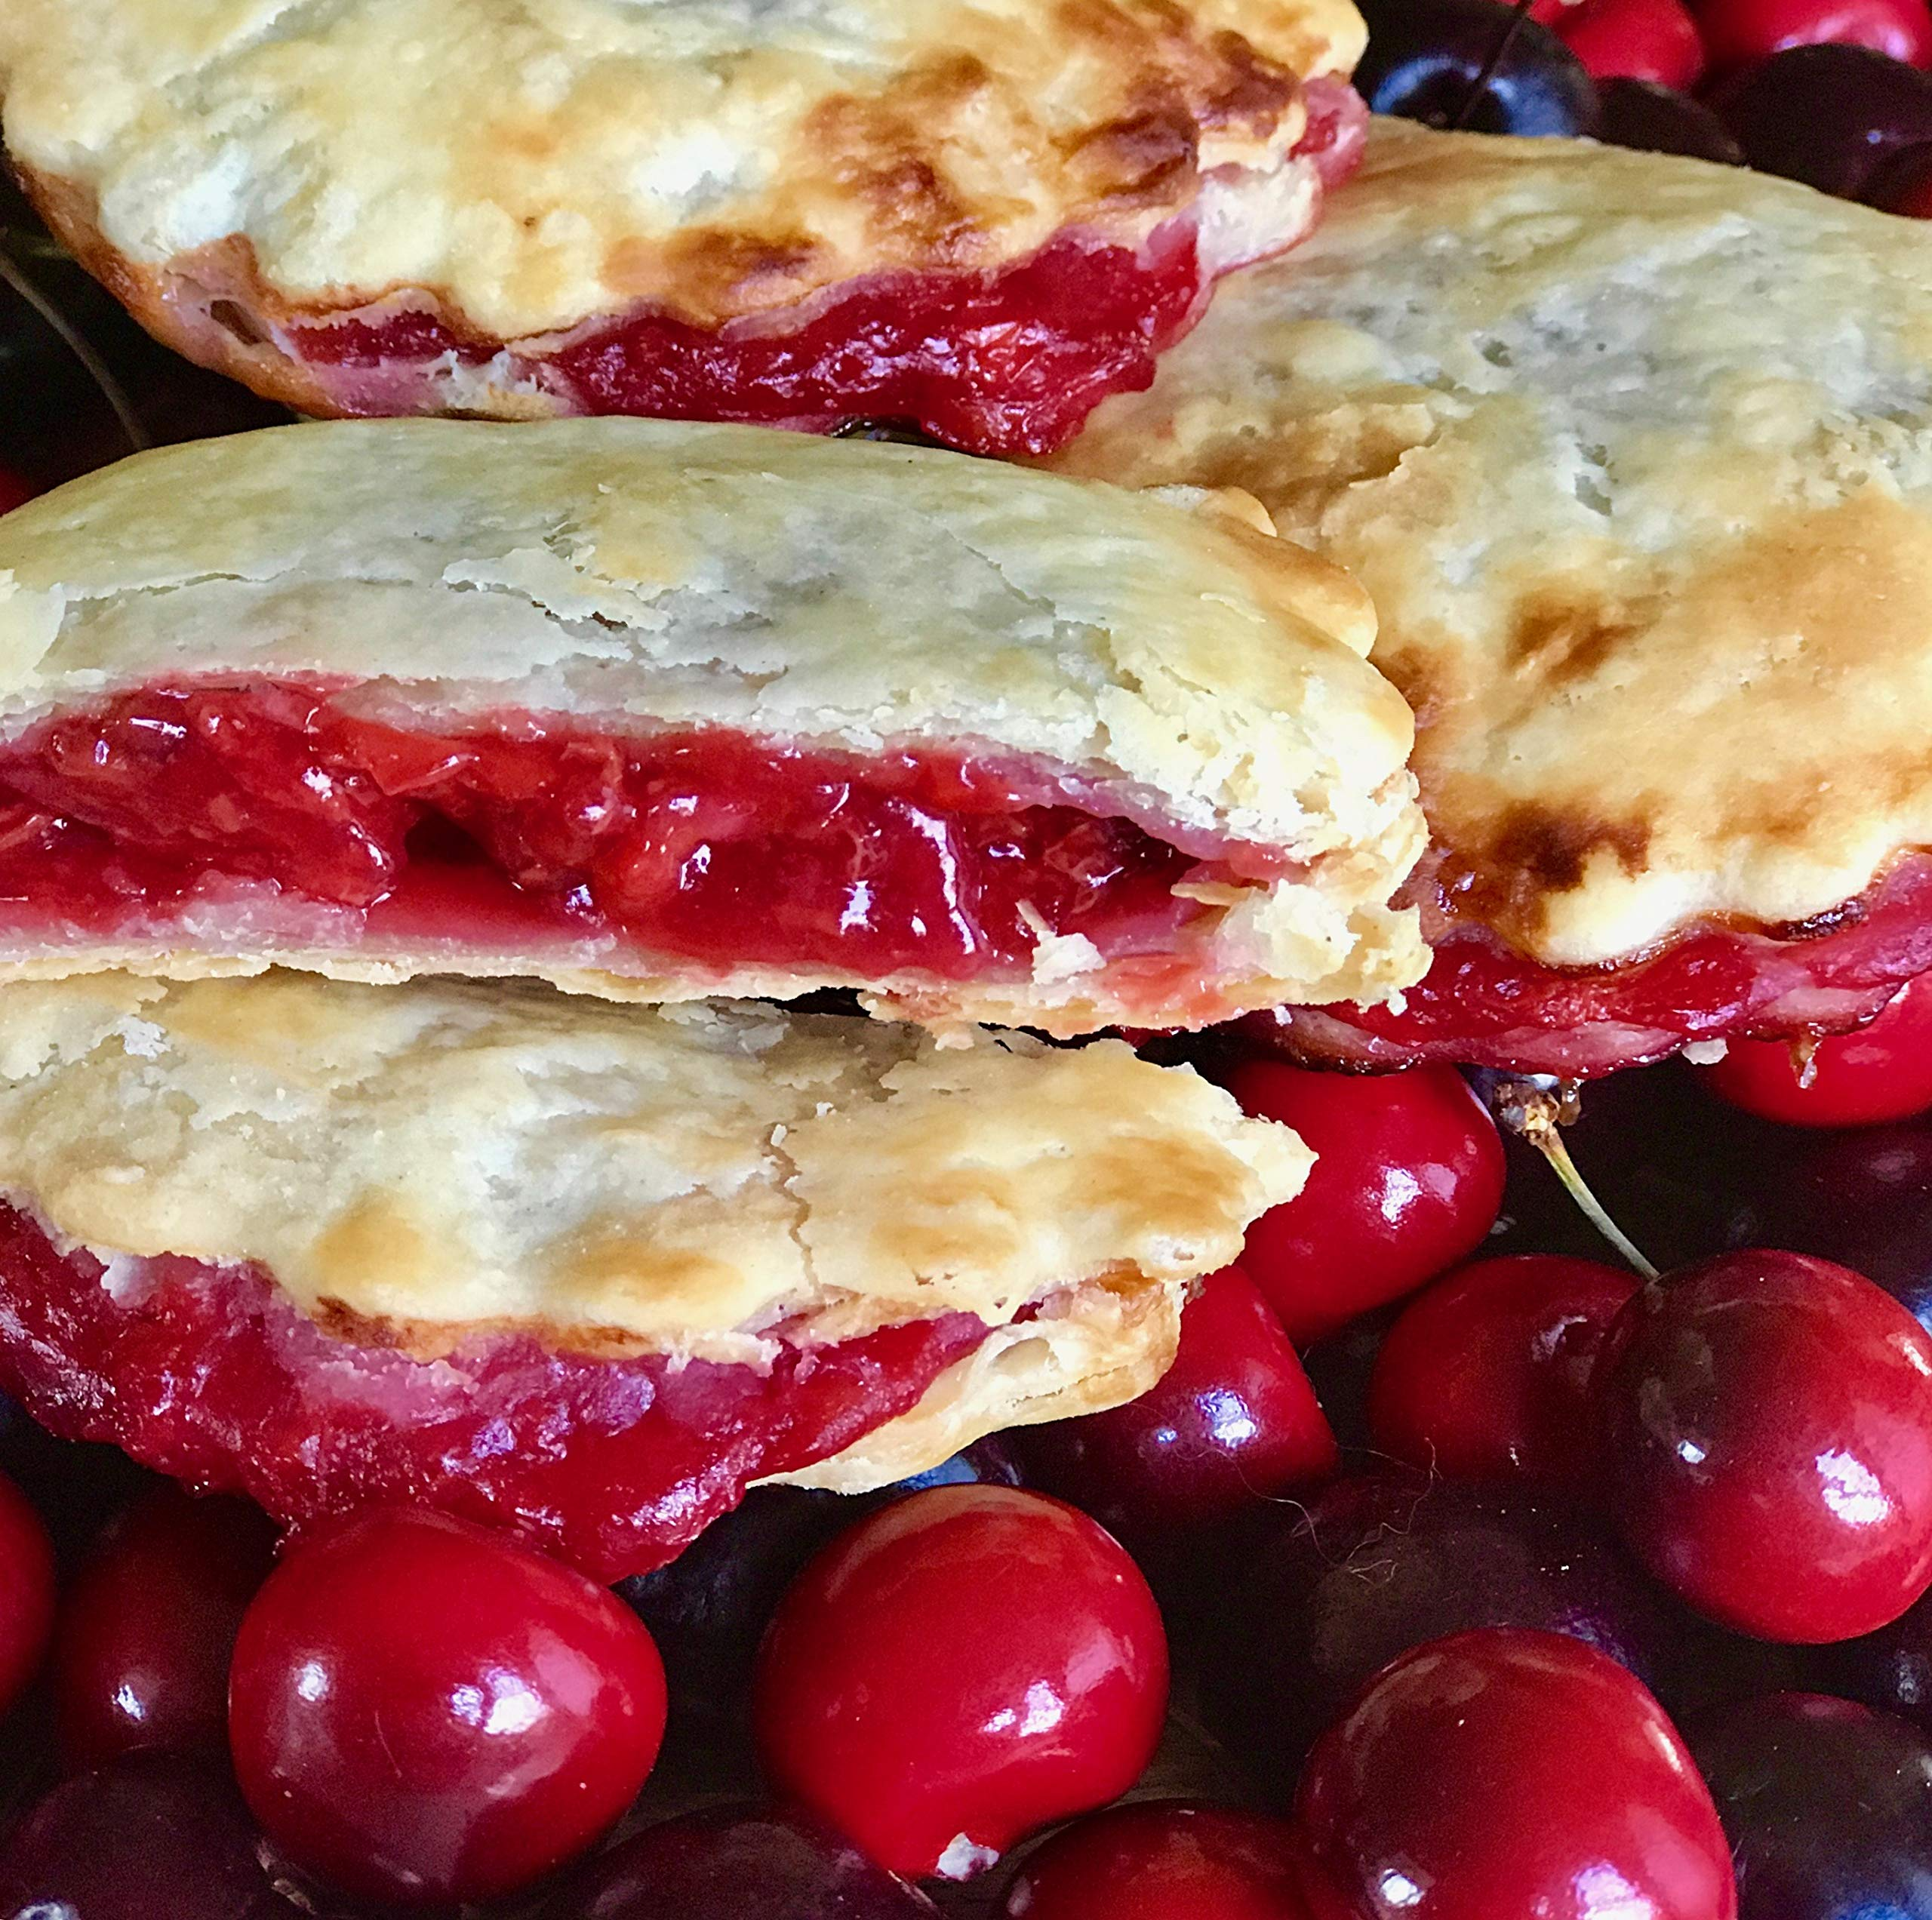 Mamie's 12 Pack Melt-in-Your-Mouth Single Serving Cherry Pies, Individually Packaged 4.5oz Pocket Pies, Preservative Free, Shipped Frozen and Ready to Bake, Made in USA. by Mamie's Pies (Image #4)